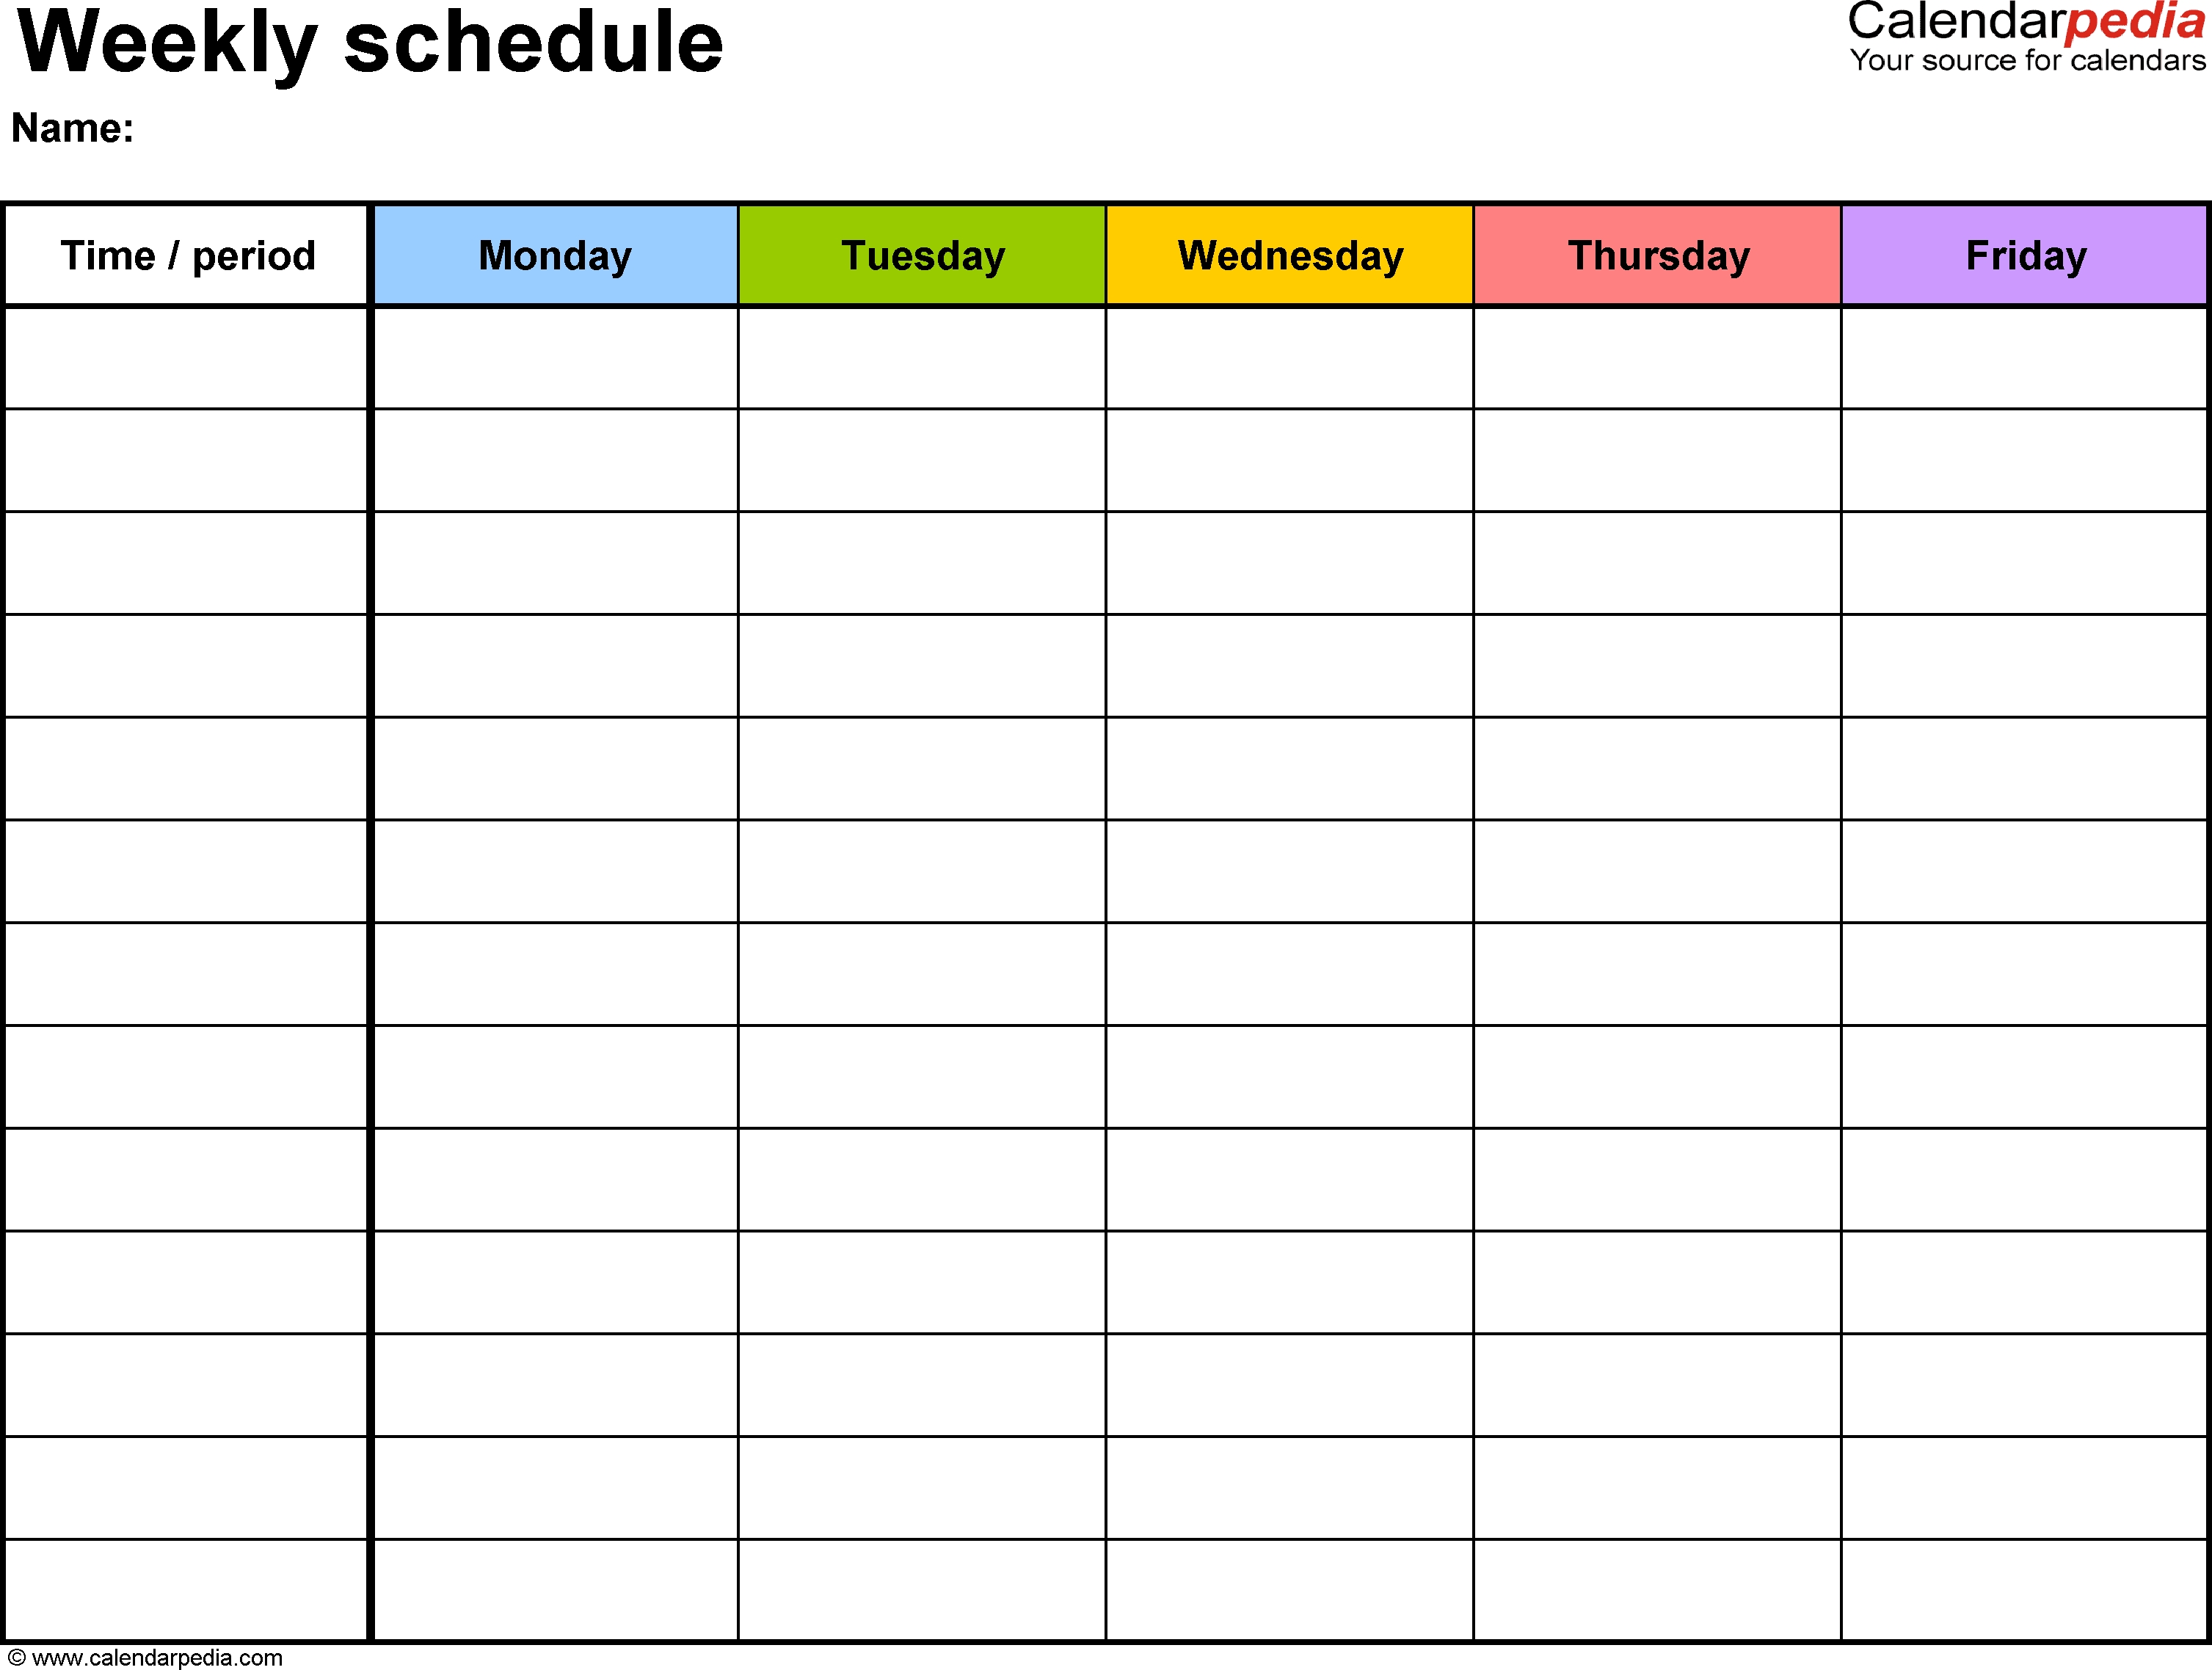 Free Weekly Schedule Templates For Word - 18 Templates within 7 Day Weekly Calendar Printable